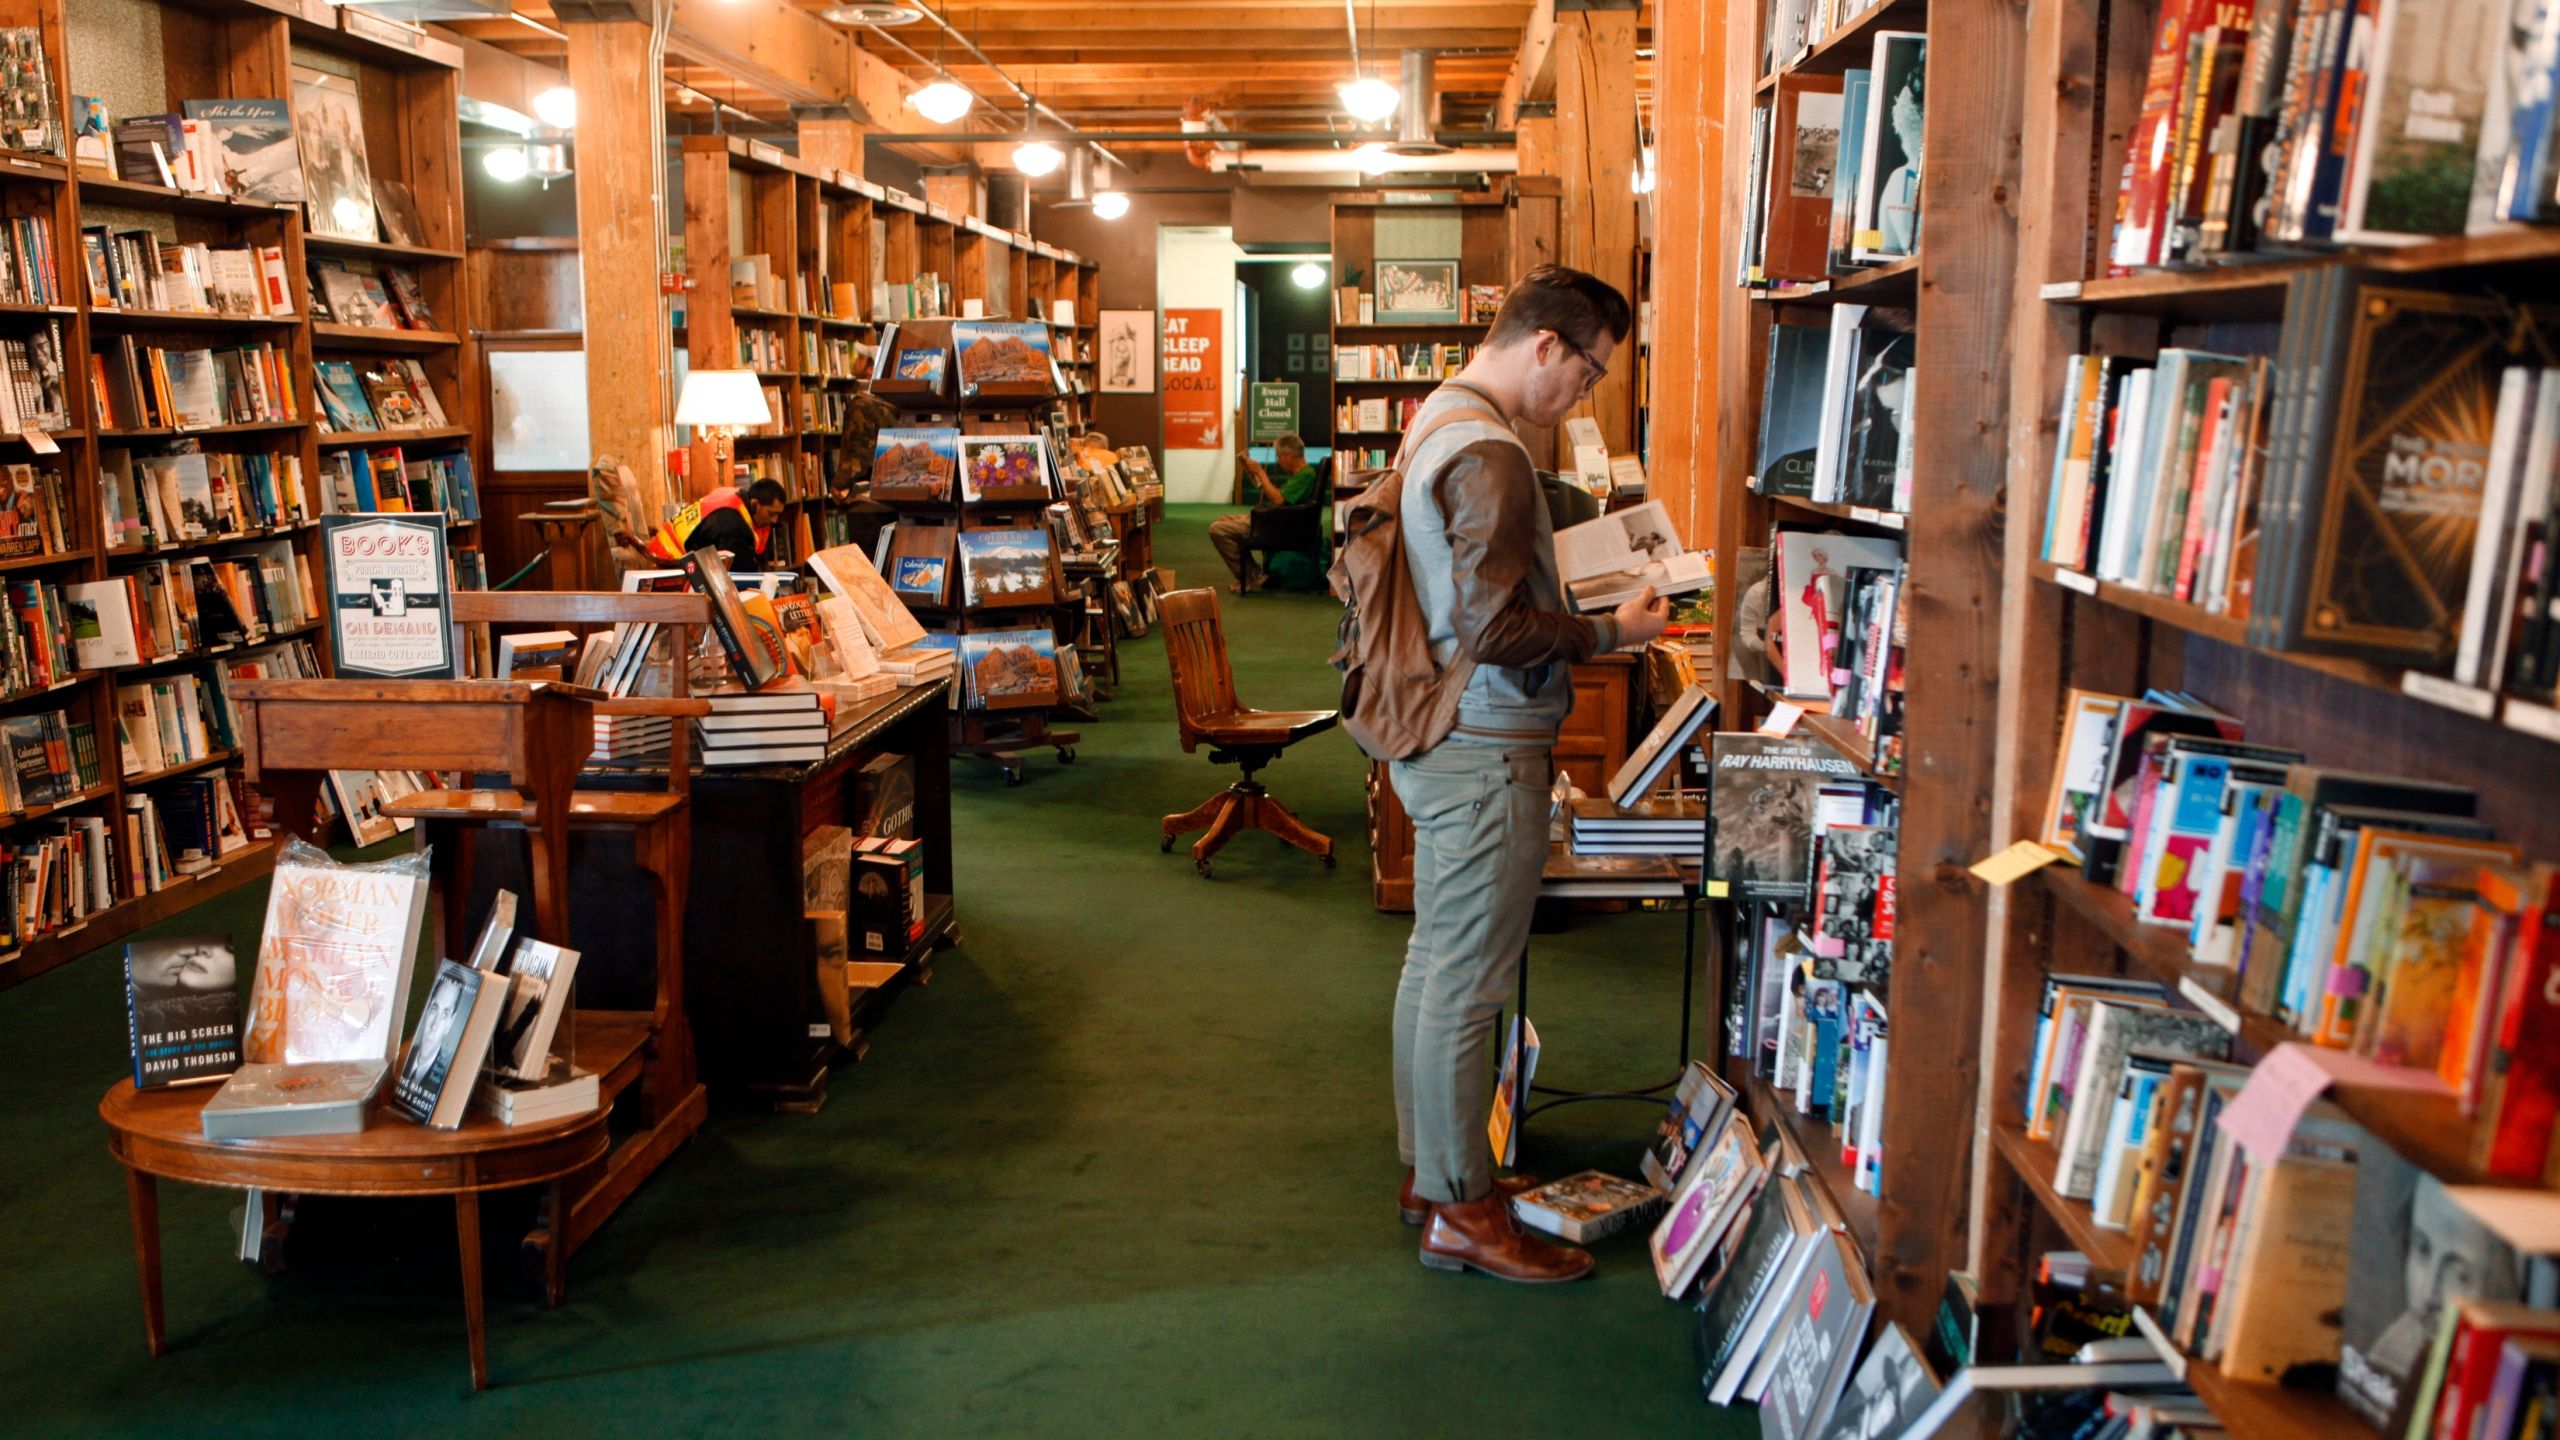 This photo taken on Dec. 7, 2012 shows Bryce Hoogland of Boise, Idaho browsing books at the downtown Tattered Cover book Store in Denver. (AP Photo/Ed Andrieski)